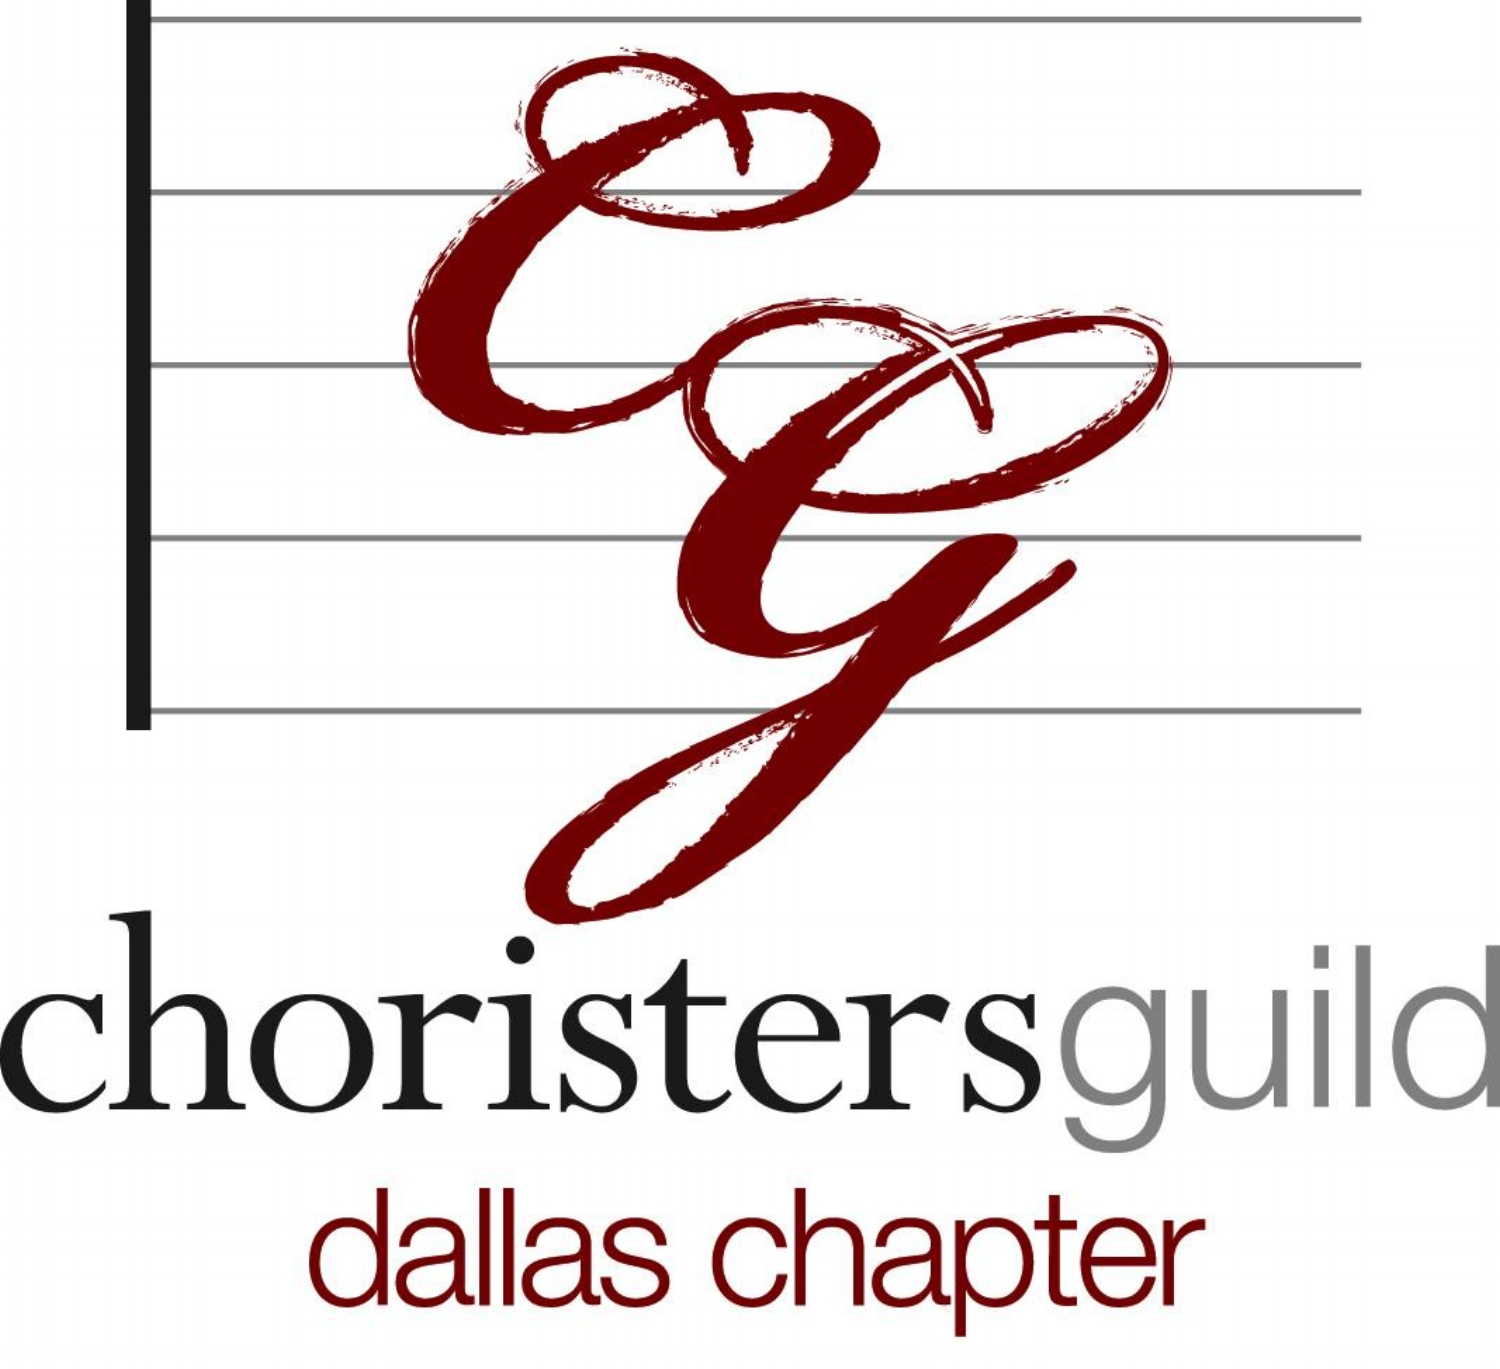 Dallas Chapter Choristers Guild